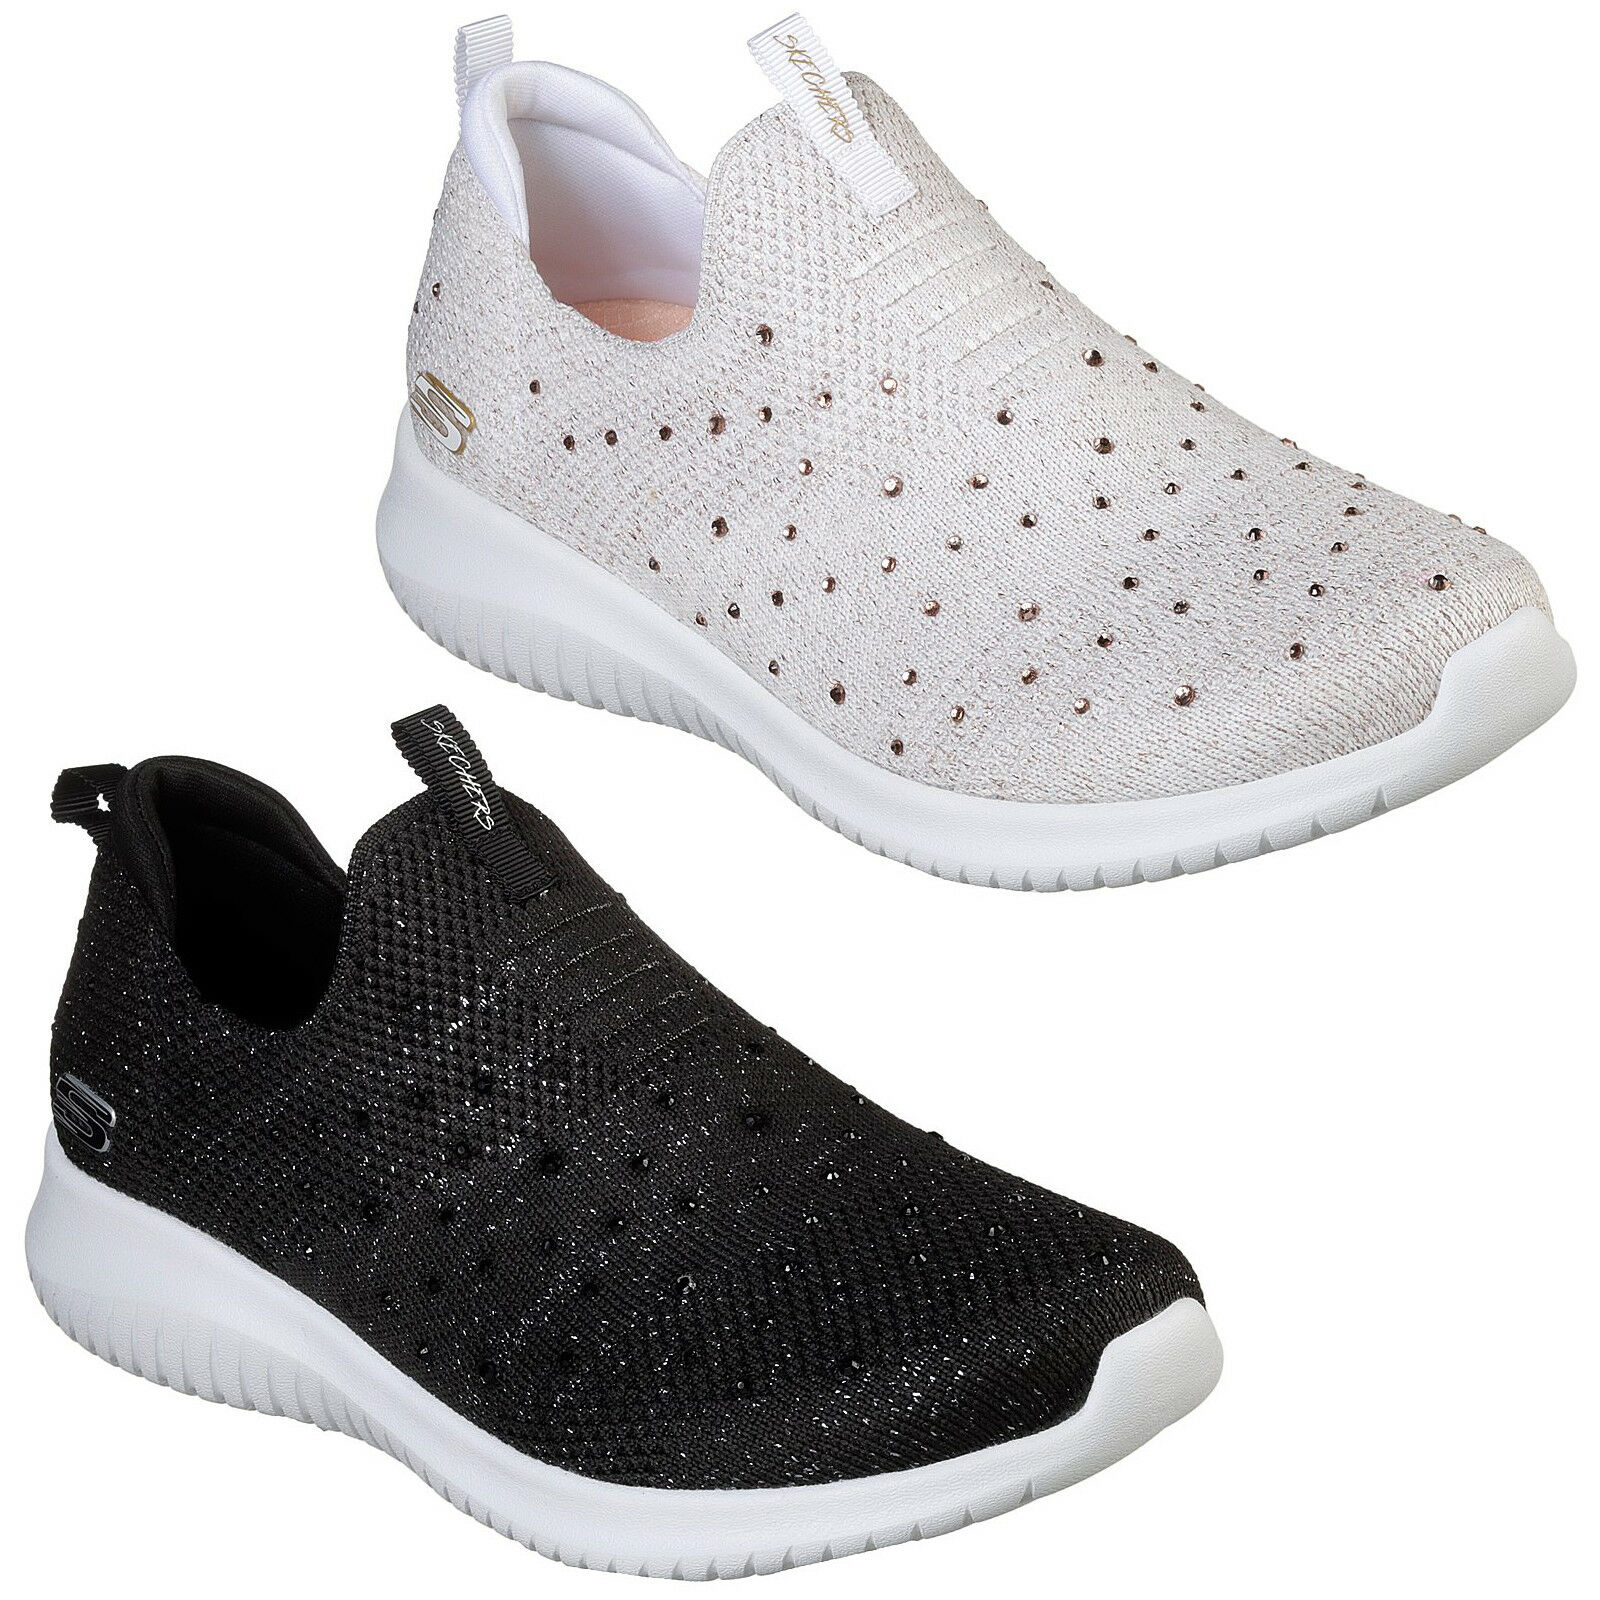 Skechers Ultra Flex - Thrive Thrive Thrive Up Trainers Jewel Sparkle Mesh shoes Womens 13113 1e14c0